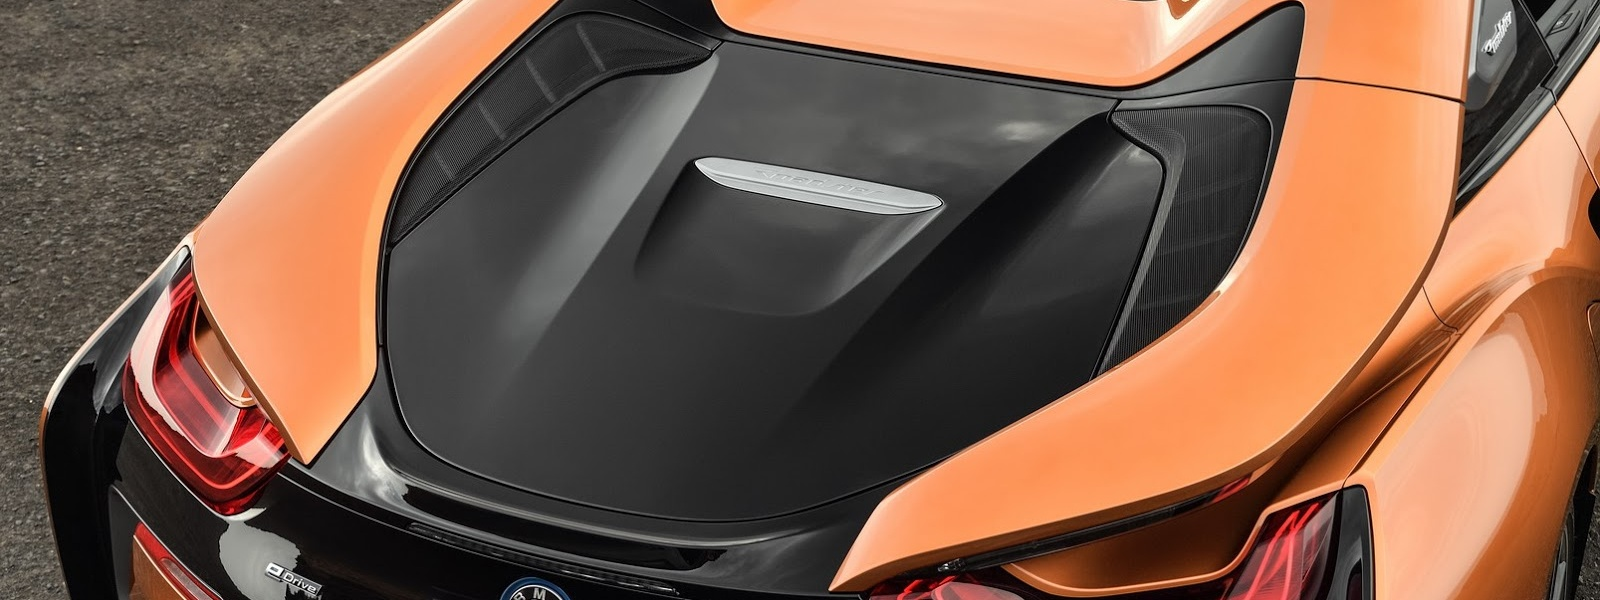 2019-BMW-i8-Roadster-Coupe-52.jpg